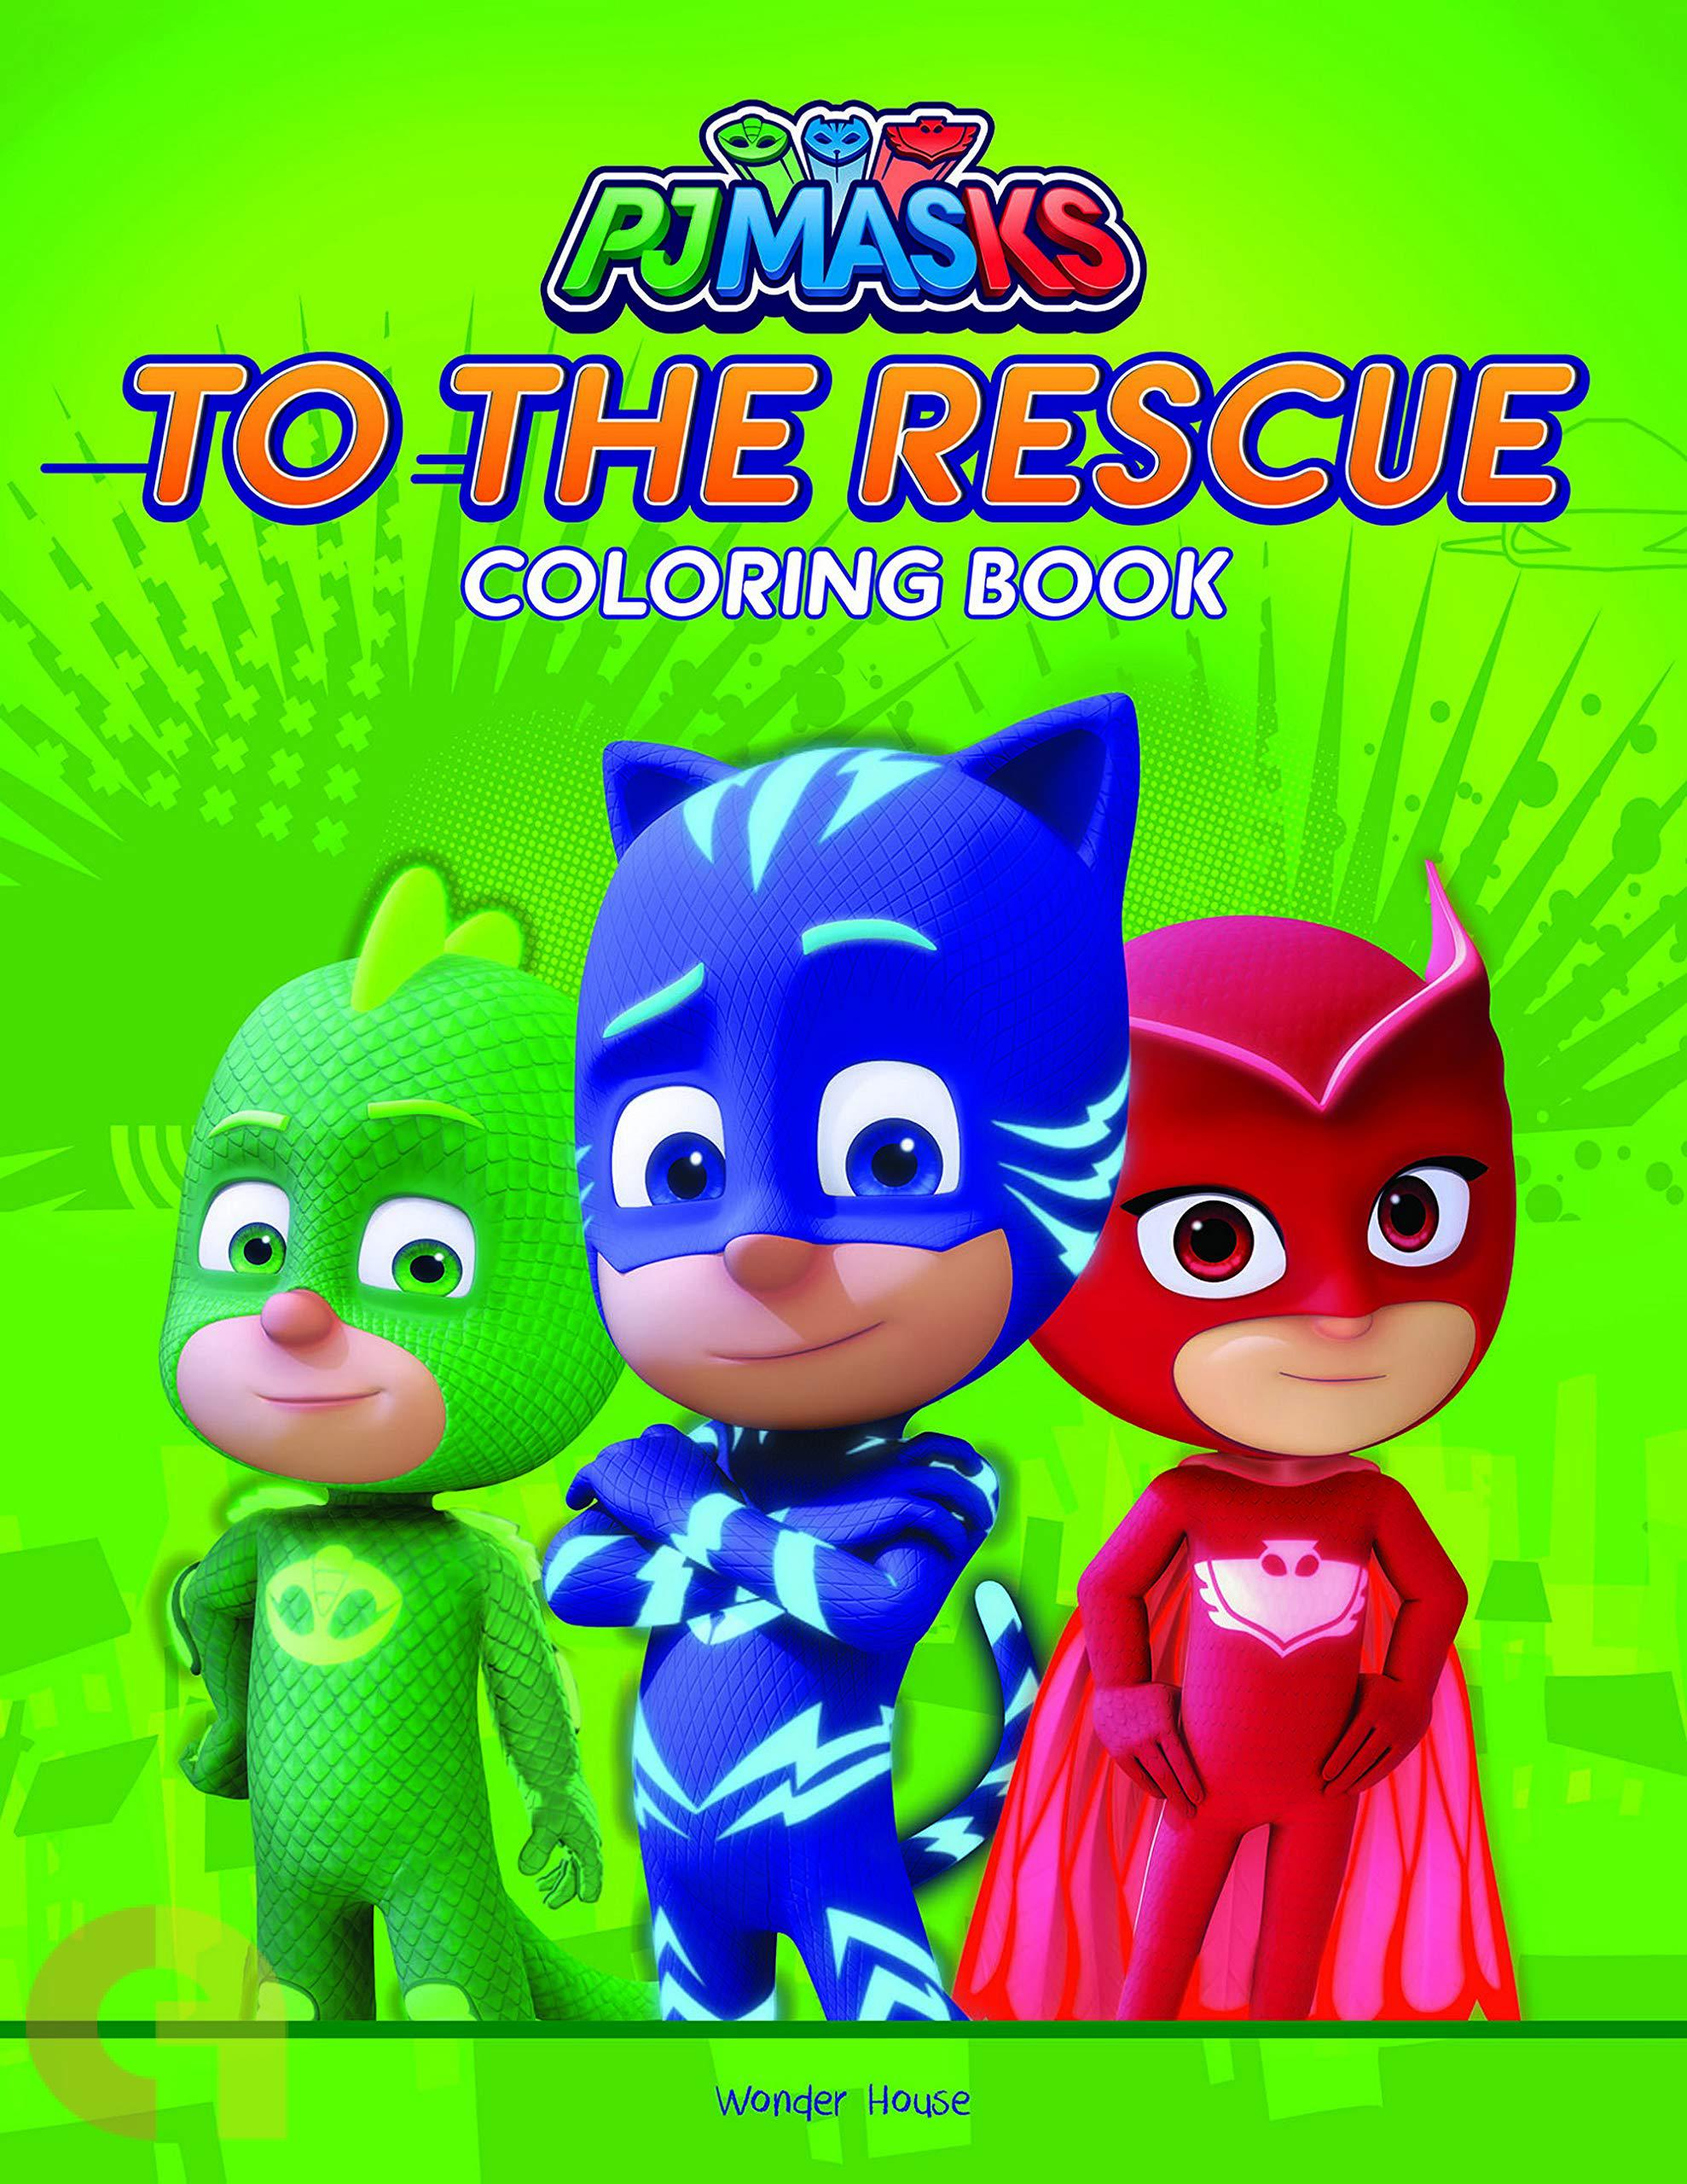 PJ Masks: To The Rescue